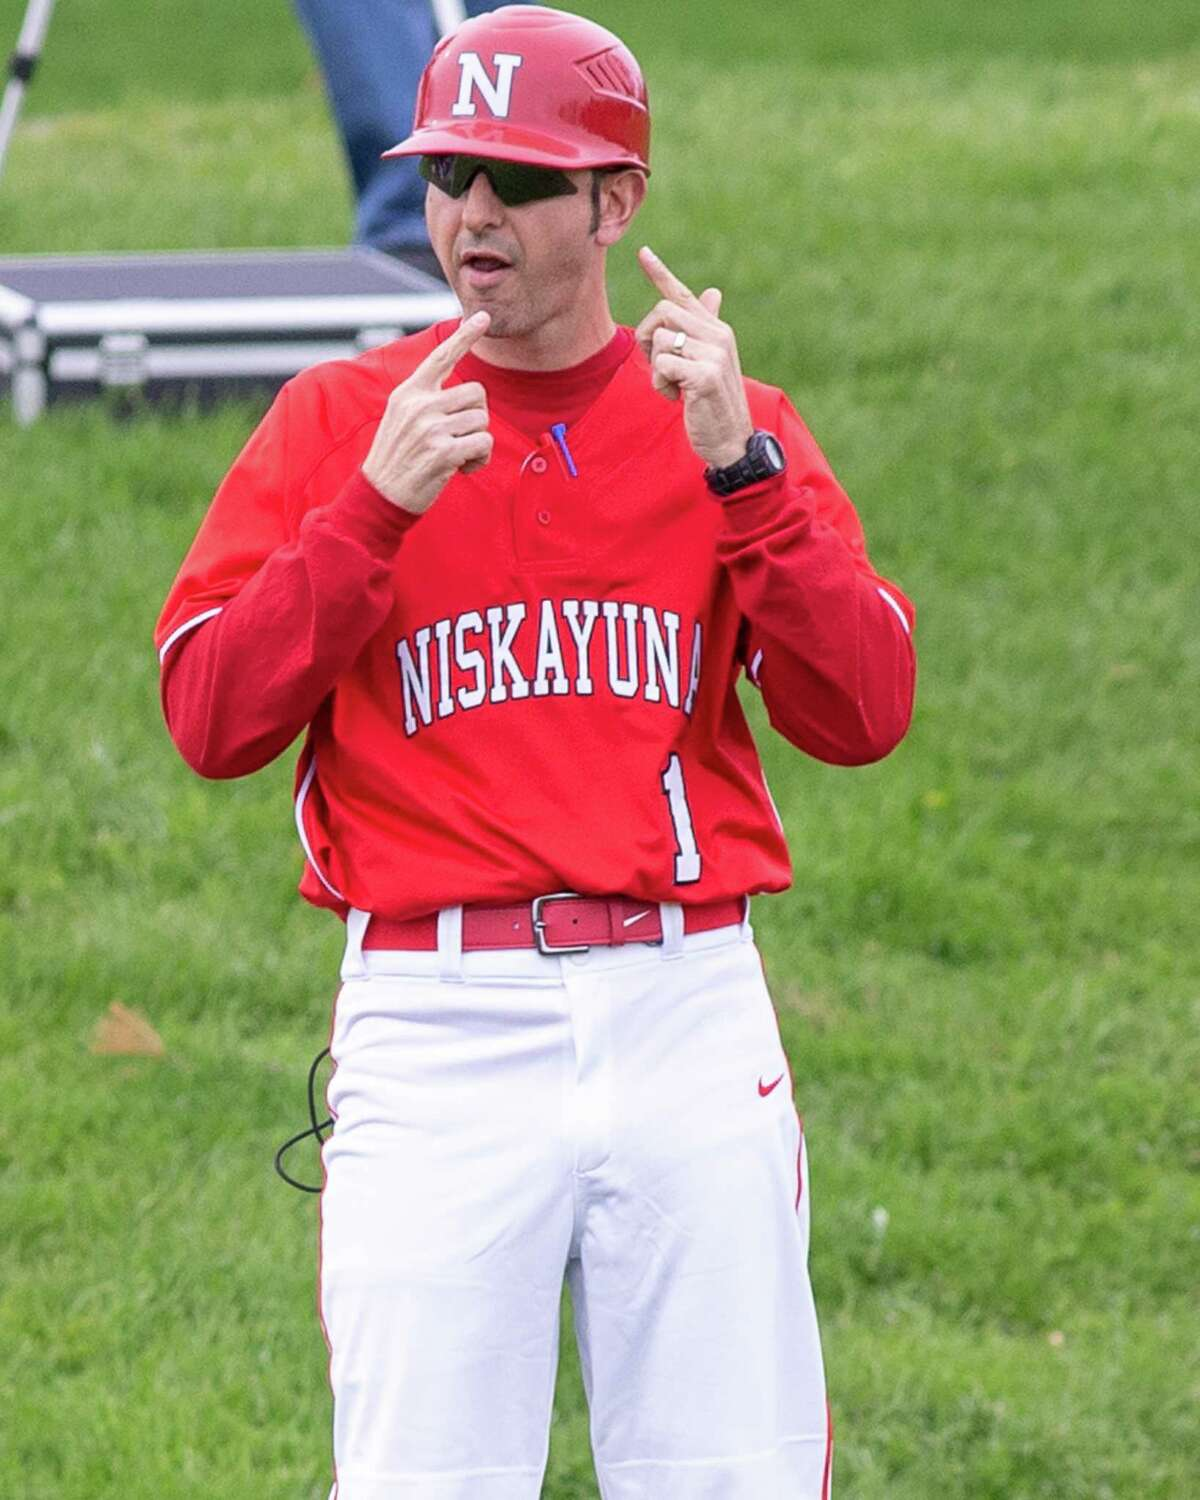 Niskayuna baseball coach Chris Bianchi, shown in 2019, said he and his players were glad to be back on the field Thursday. (James Franco/Times Union archive)